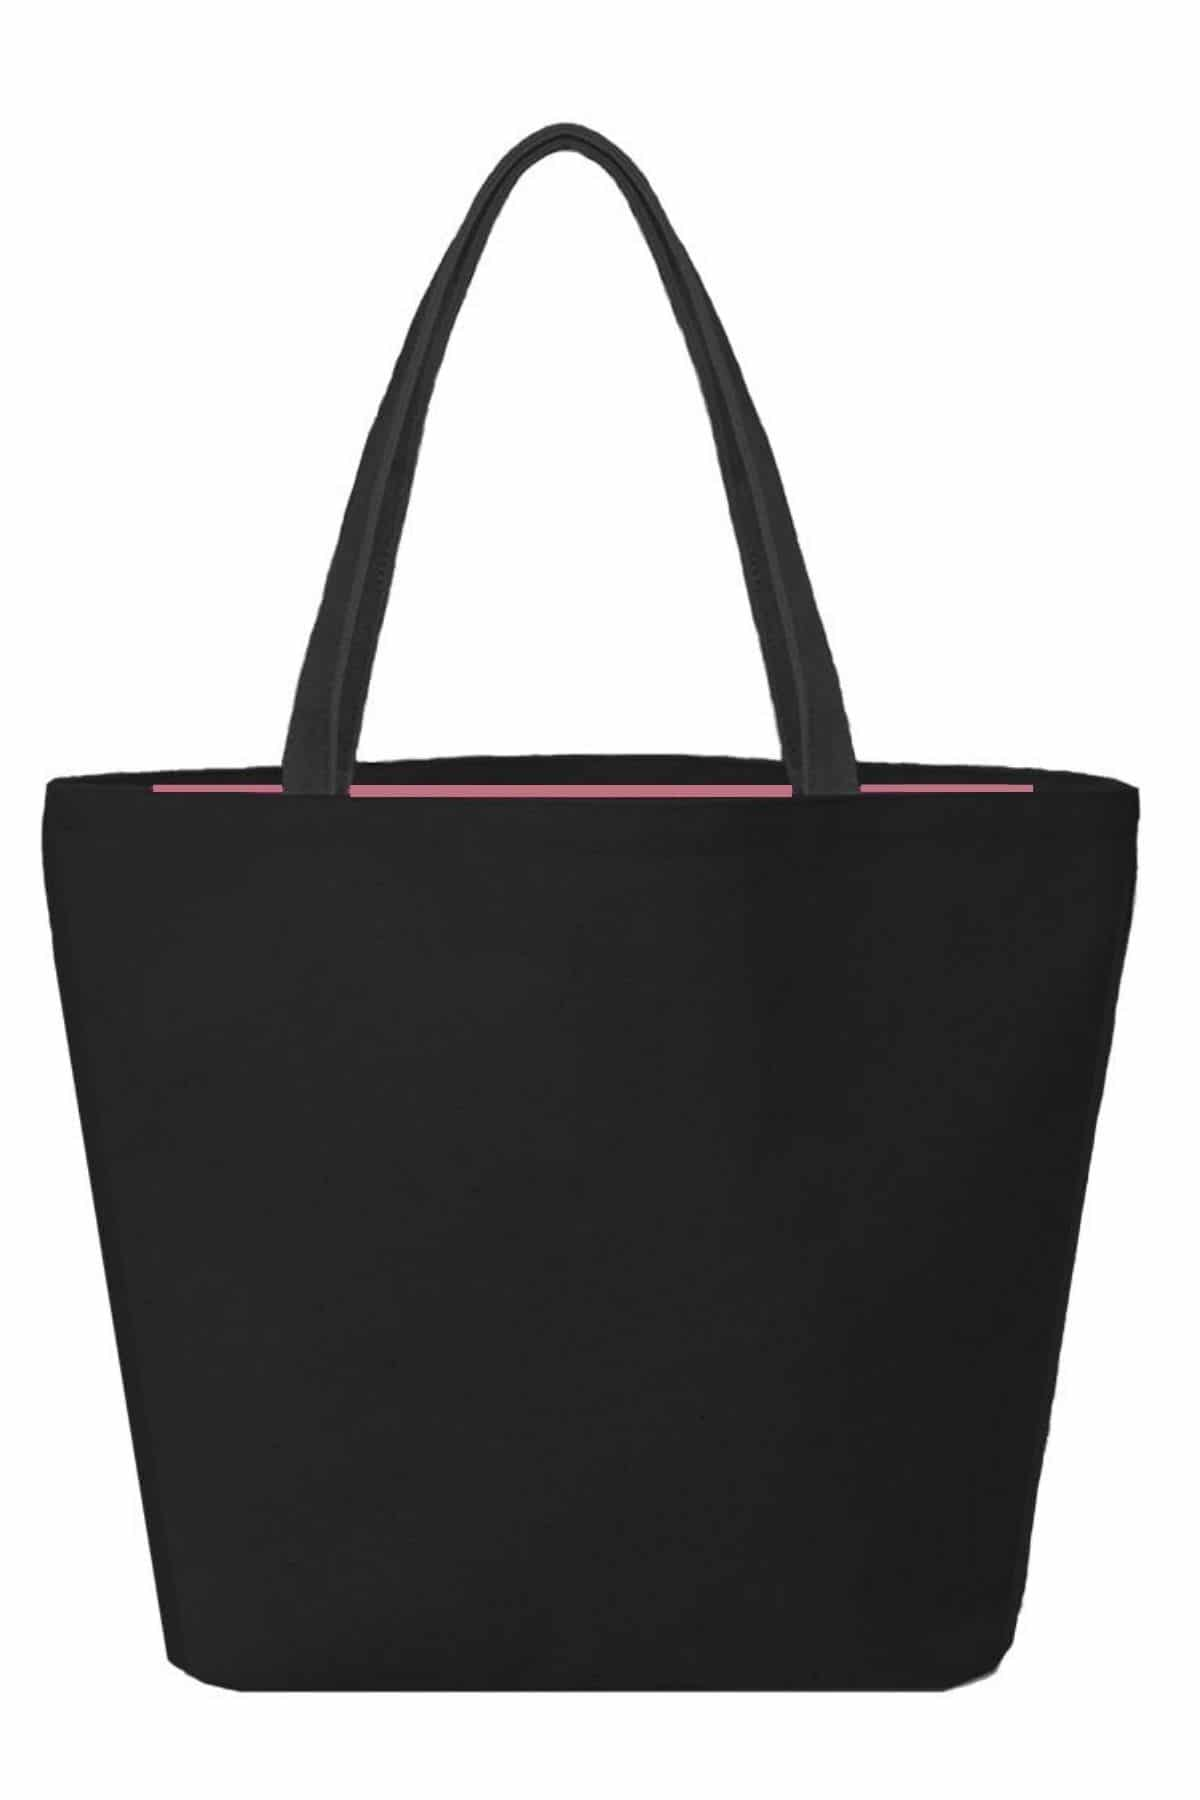 Star Heart tote bag black pink interior lining